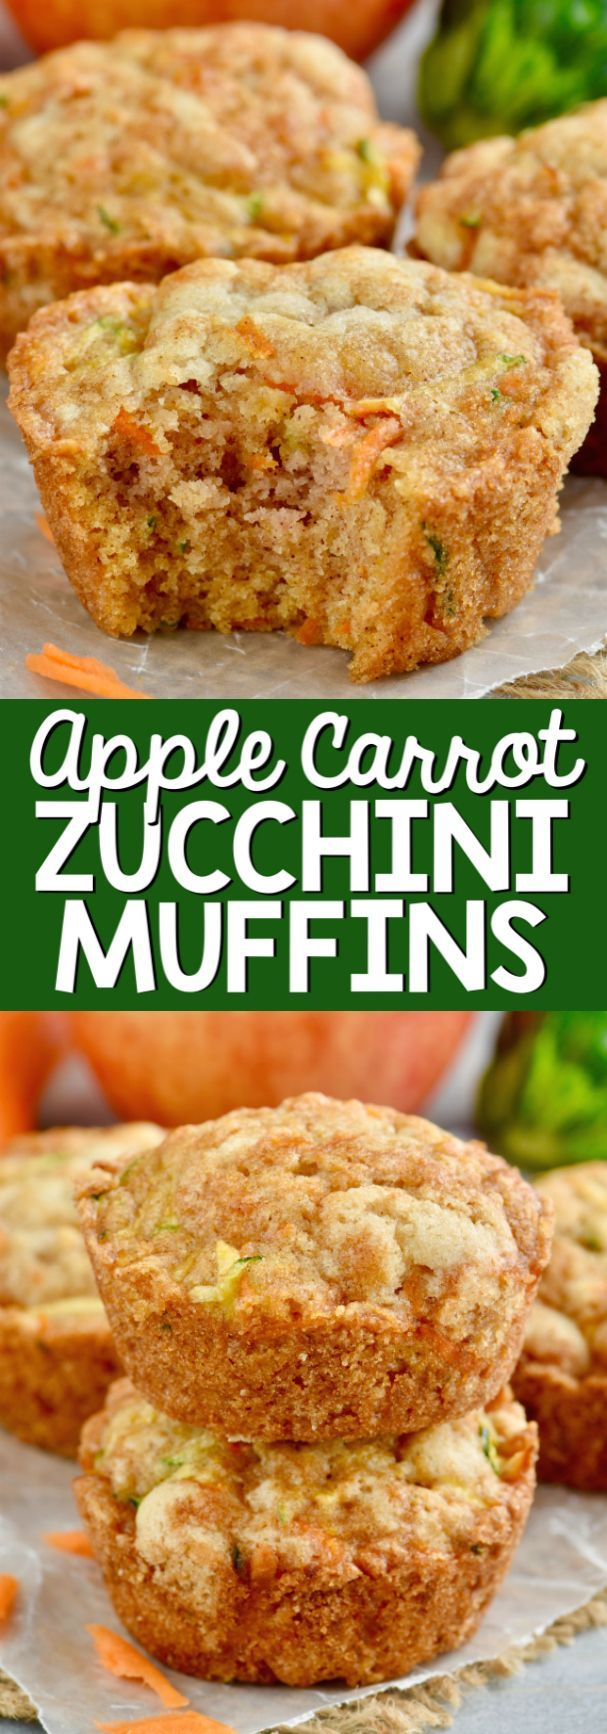 most delicious Apple Carrot Zucchini Muffins with some sneaky vegetables on the side!